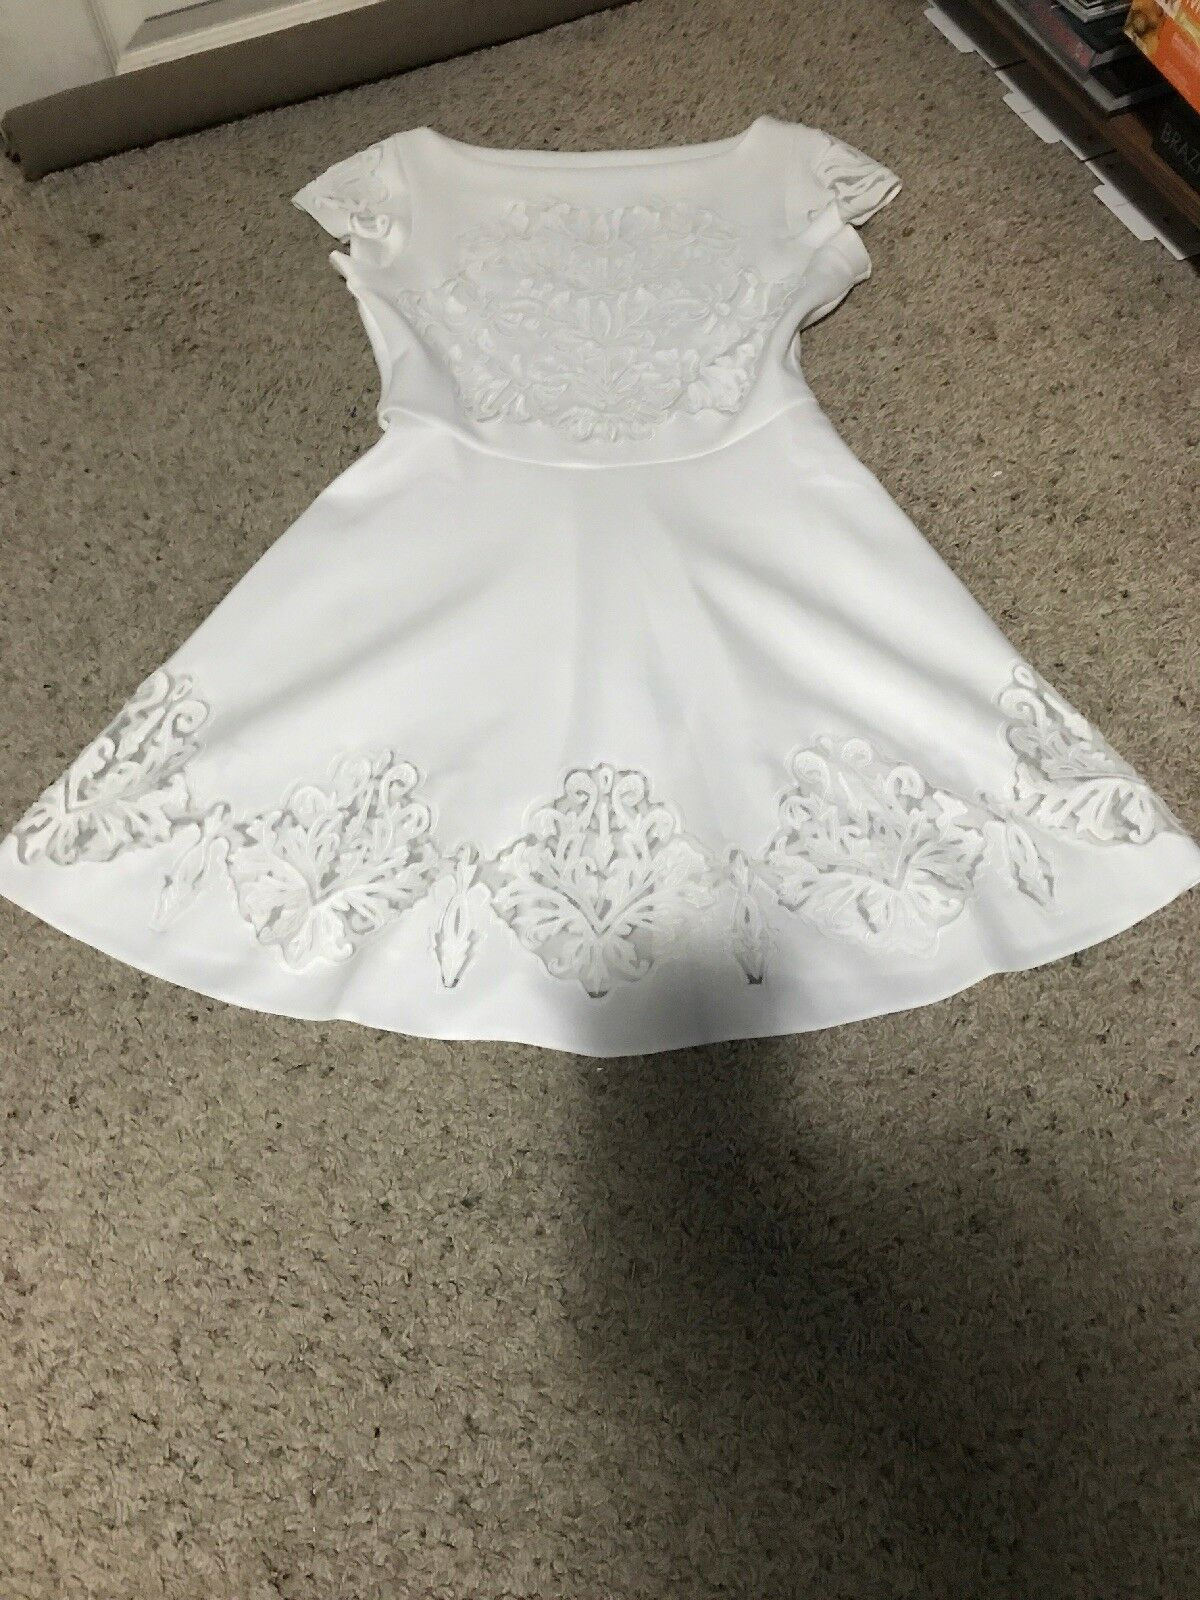 Free People Anthropologie White Lace Dress Size XP